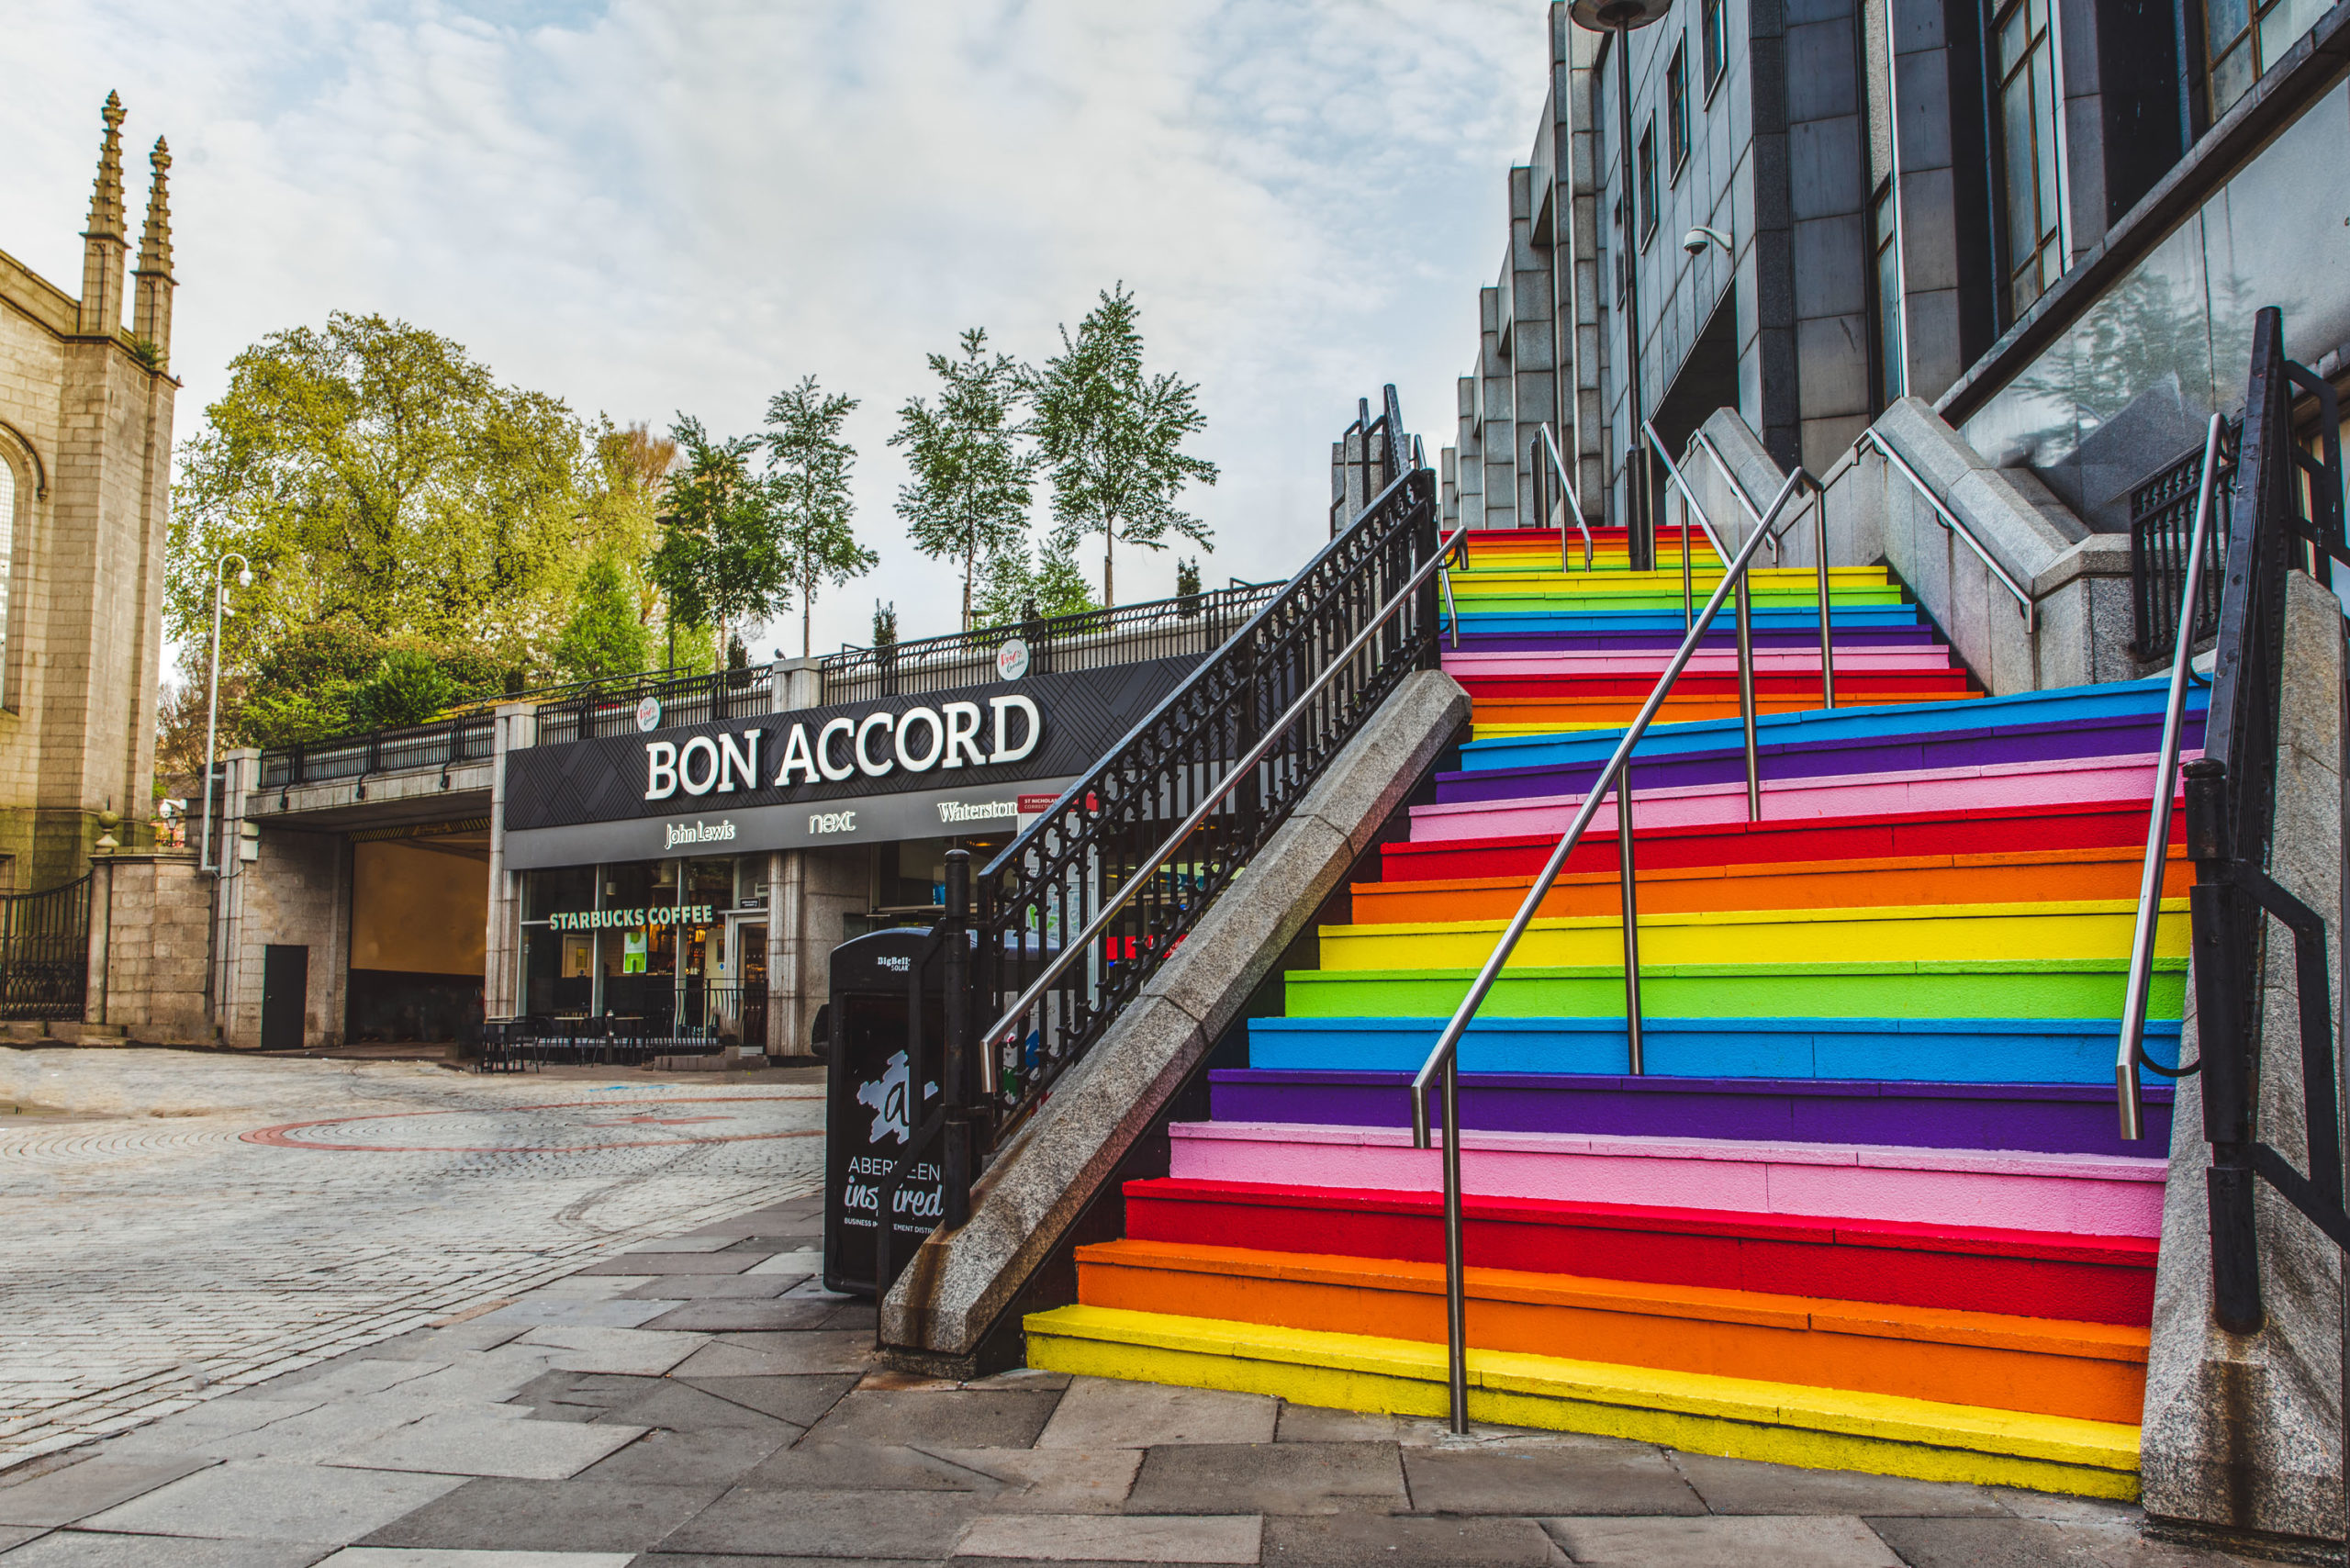 The Bon Accord Centre in Aberdeen is one of a number of shopping malls set to reopen in full on July 13.